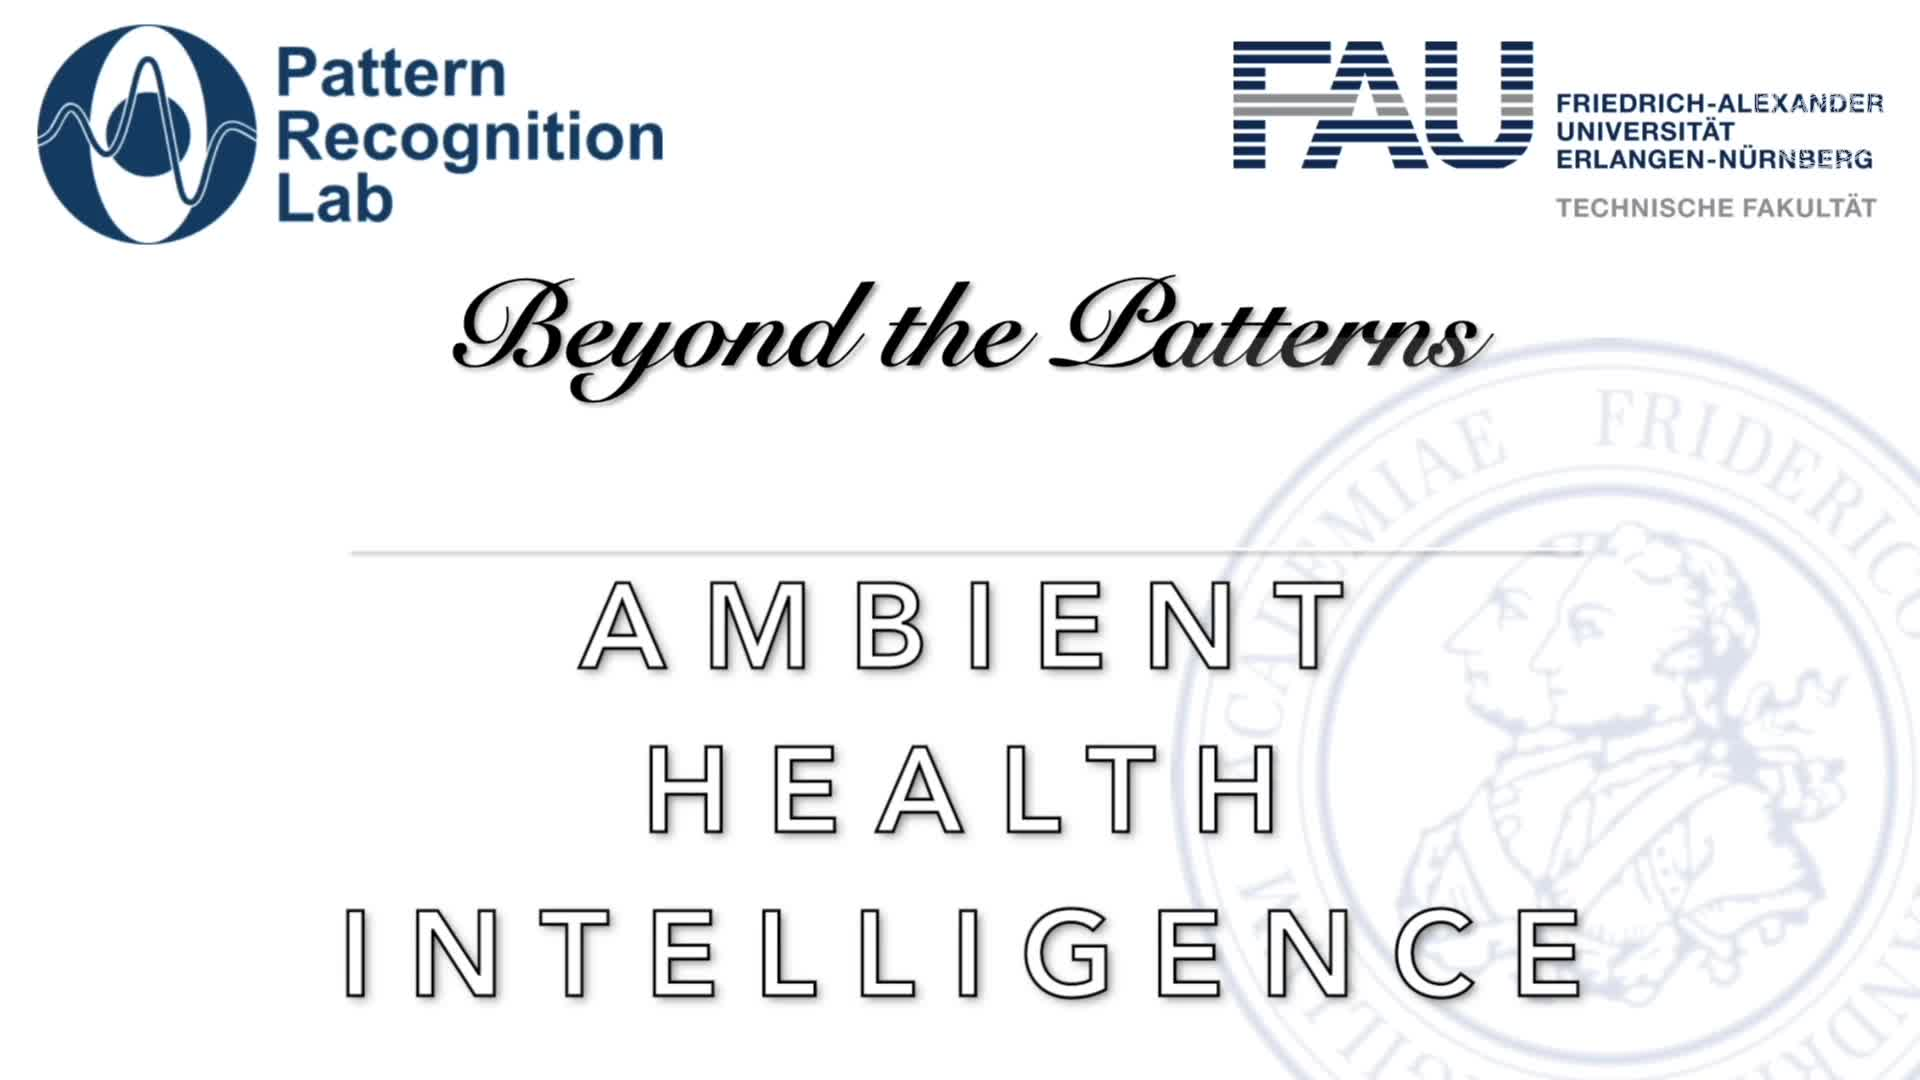 Beyond the Patterns - Prof. Dr. Björn Schuller -Ambient Health Intelligence preview image